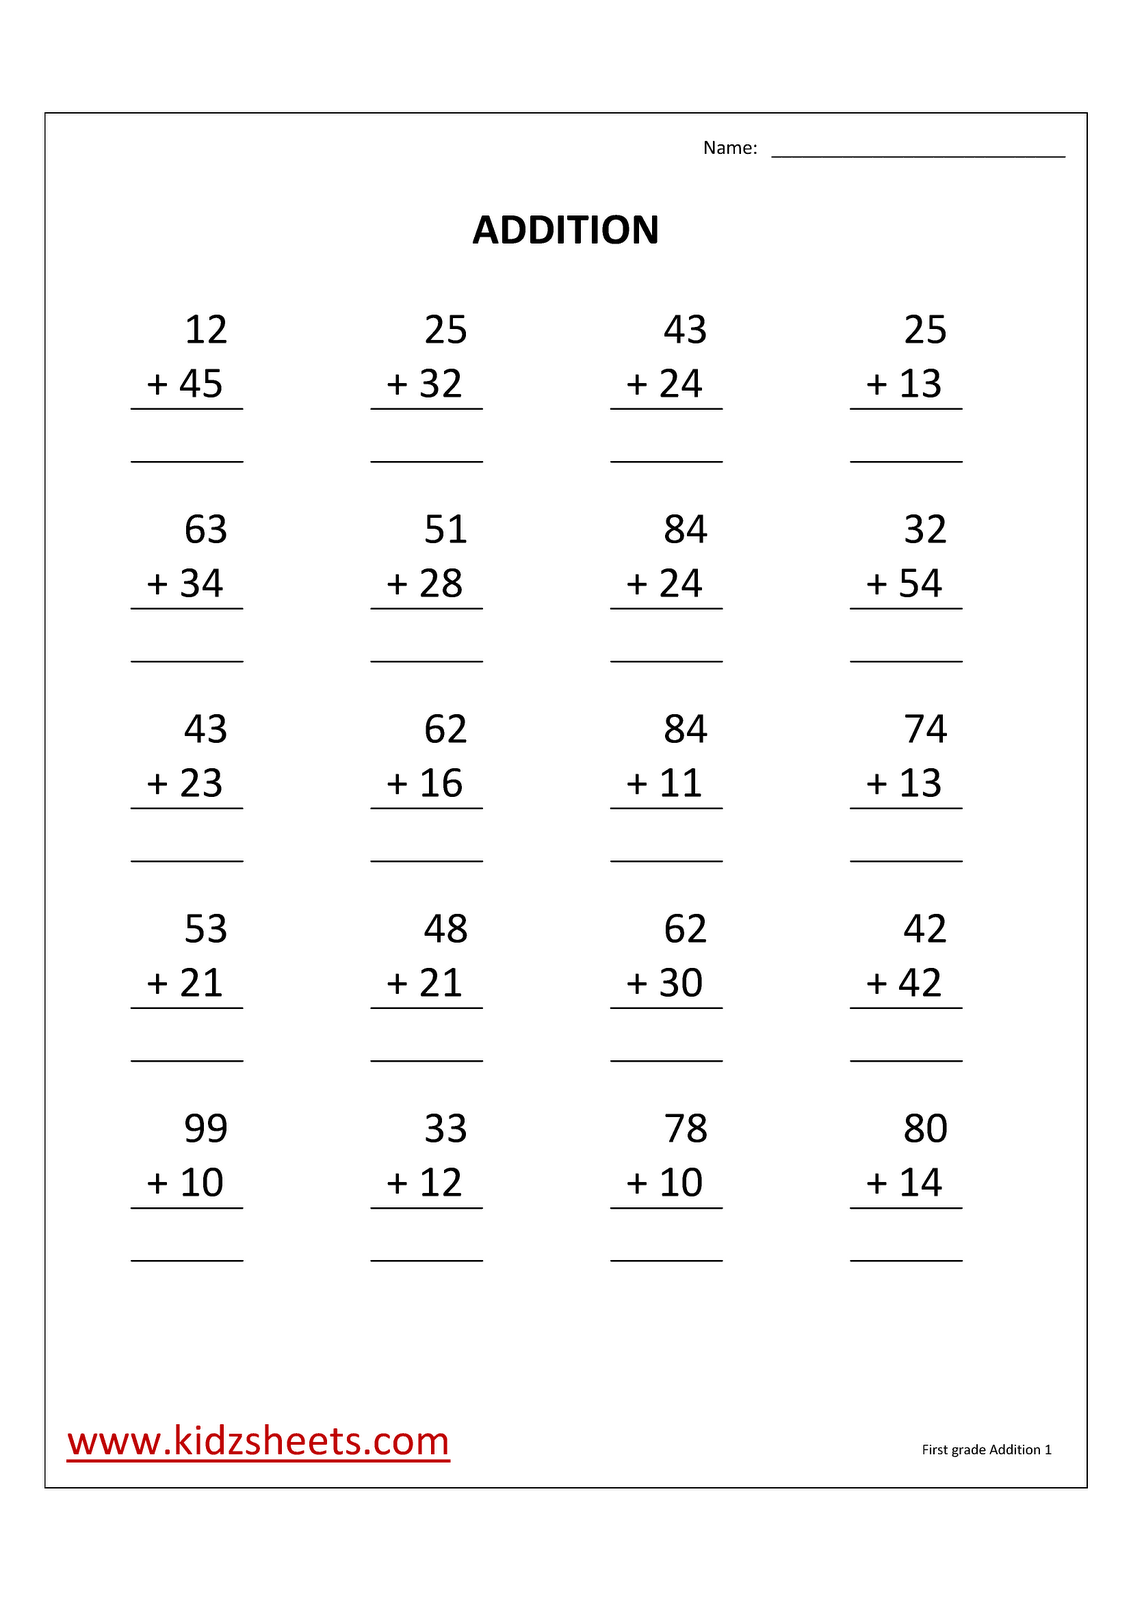 Kidz Worksheets August